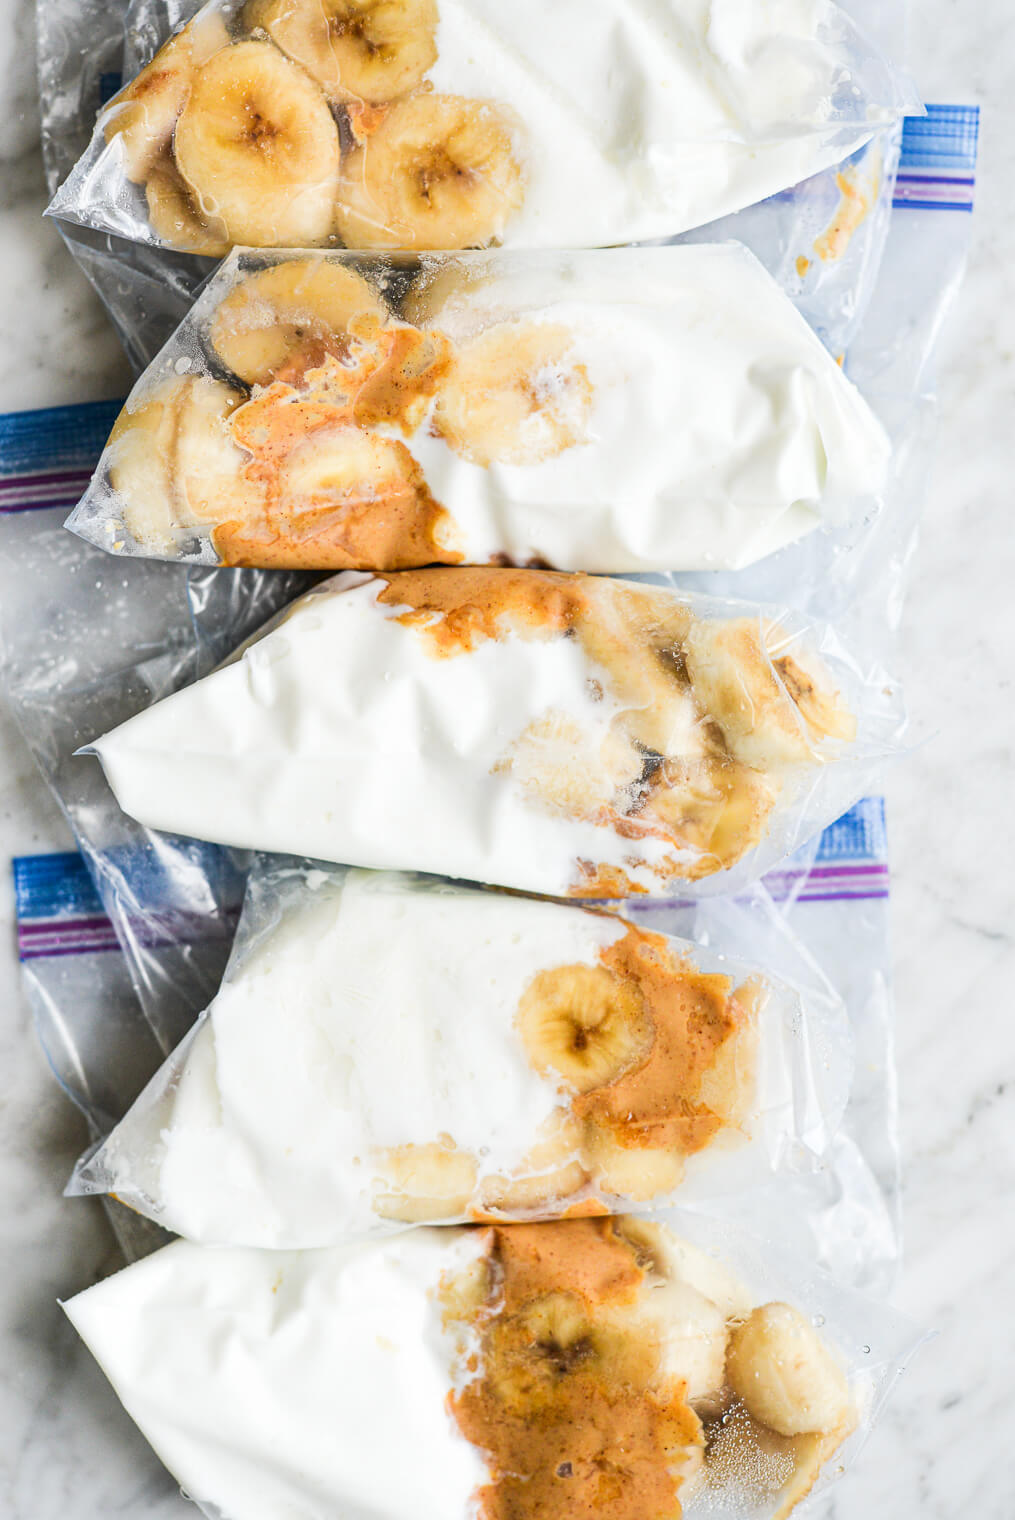 5 peanut butter banana smoothie packs laying on a marble surface ready to go in the freezer